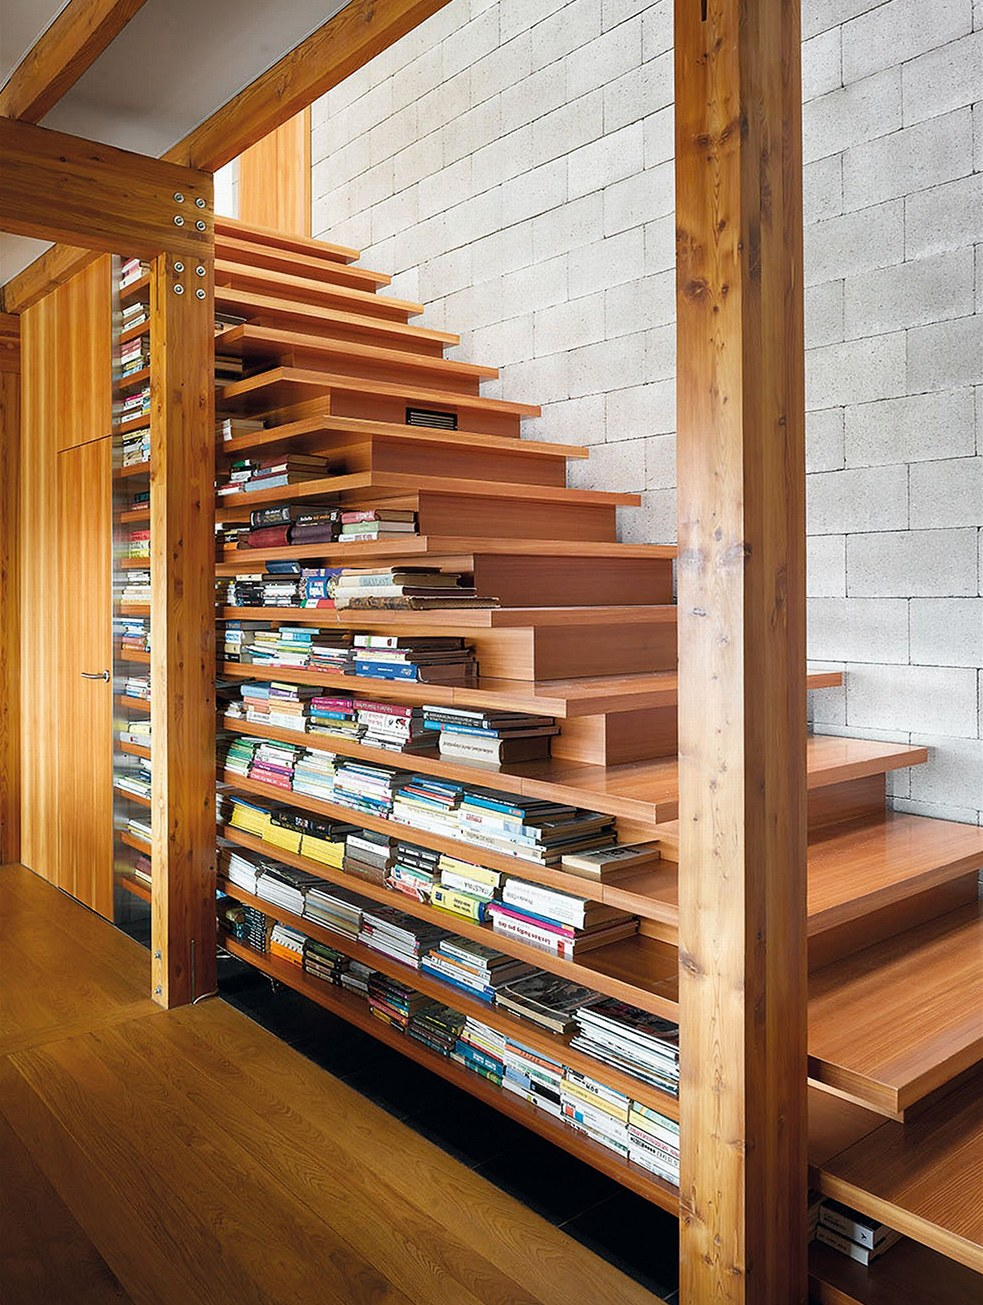 50 creative ways to incorporate book storage in around - Modelos de escaleras interiores ...